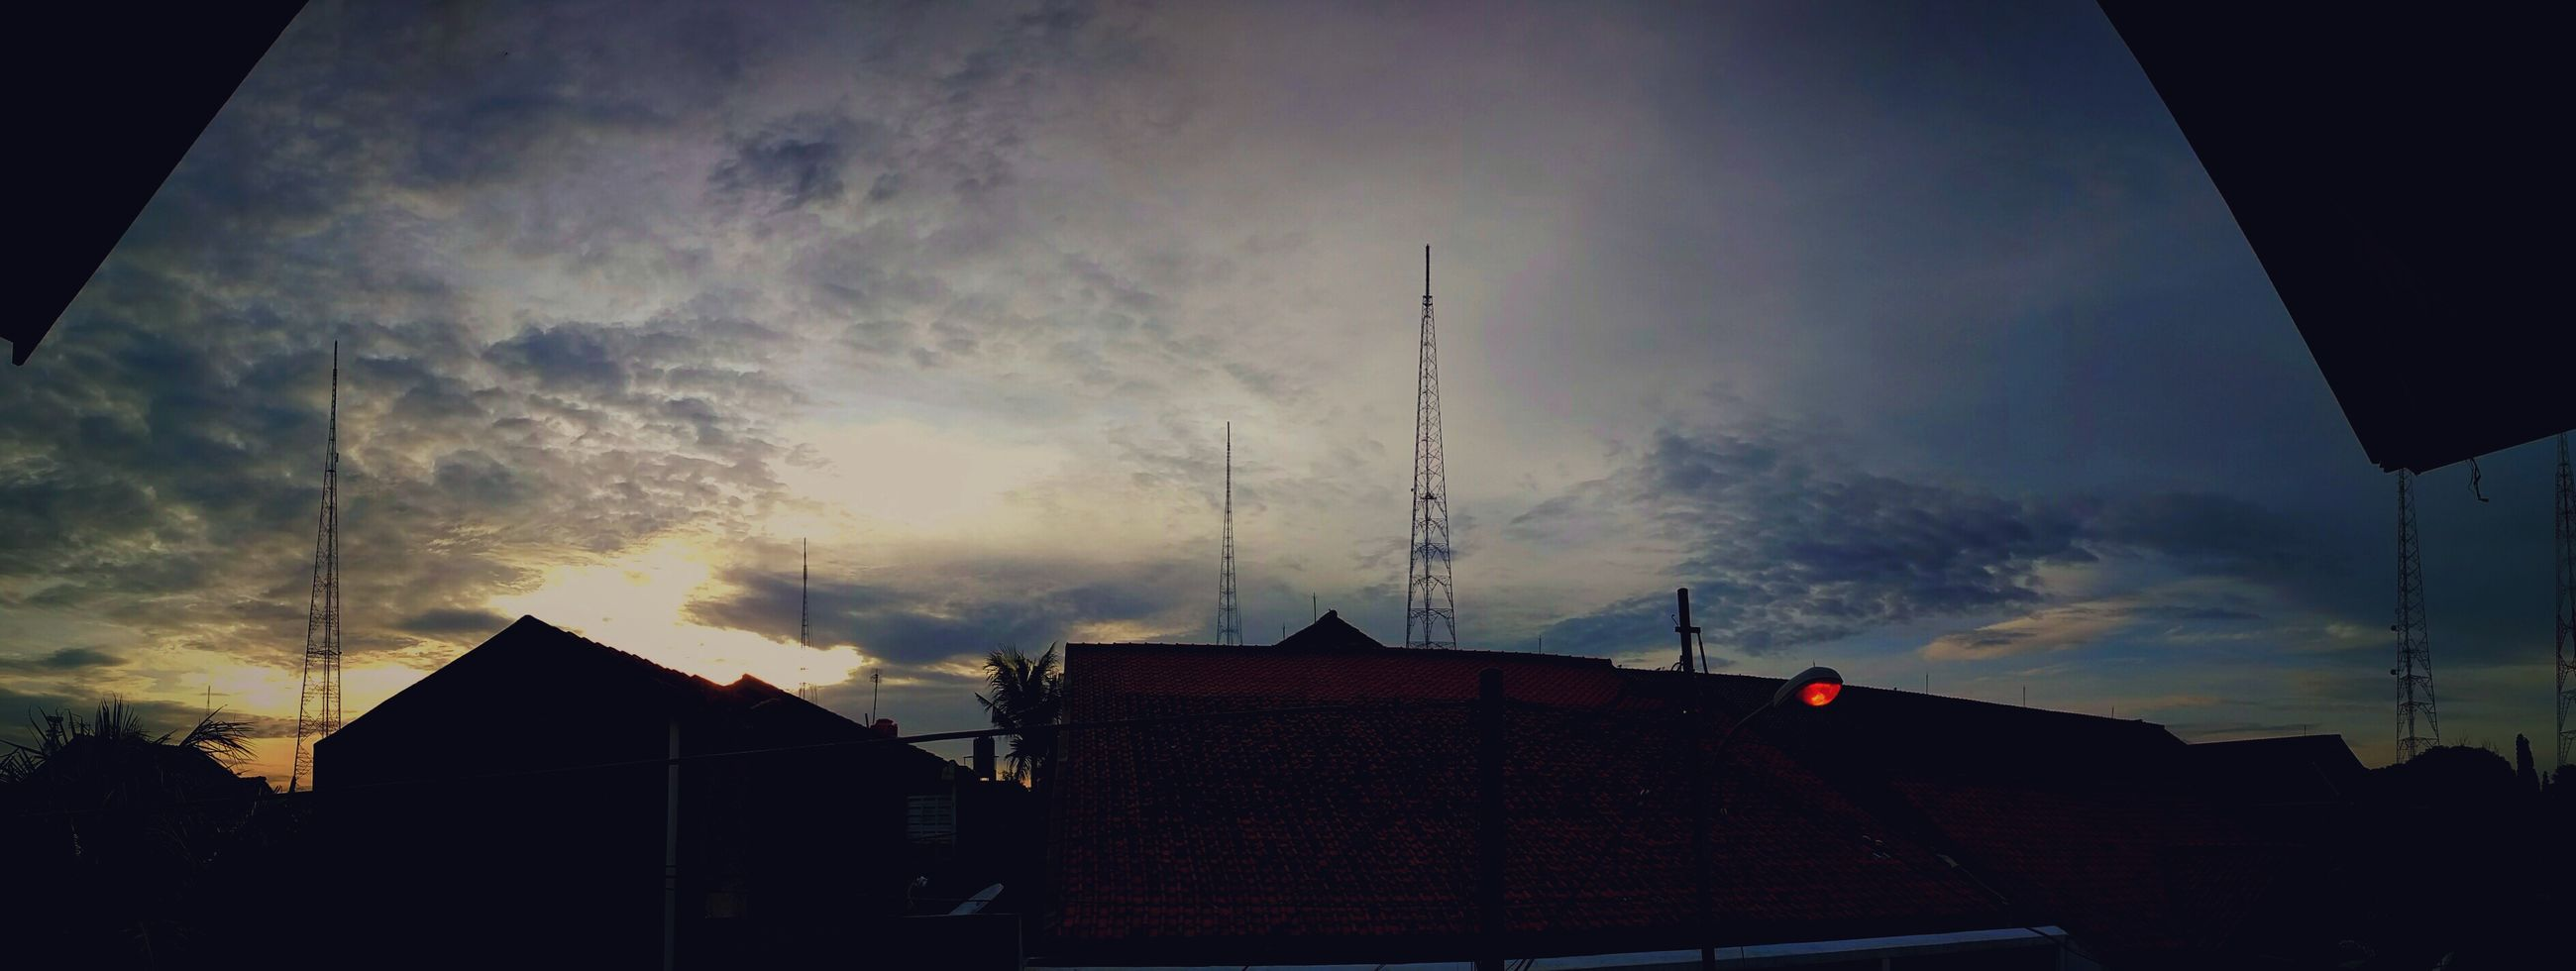 silhouette, architecture, built structure, building exterior, low angle view, sky, sunset, cloud, high section, cloud - sky, outline, dark, electricity pylon, outdoors, power line, power supply, no people, cloudy